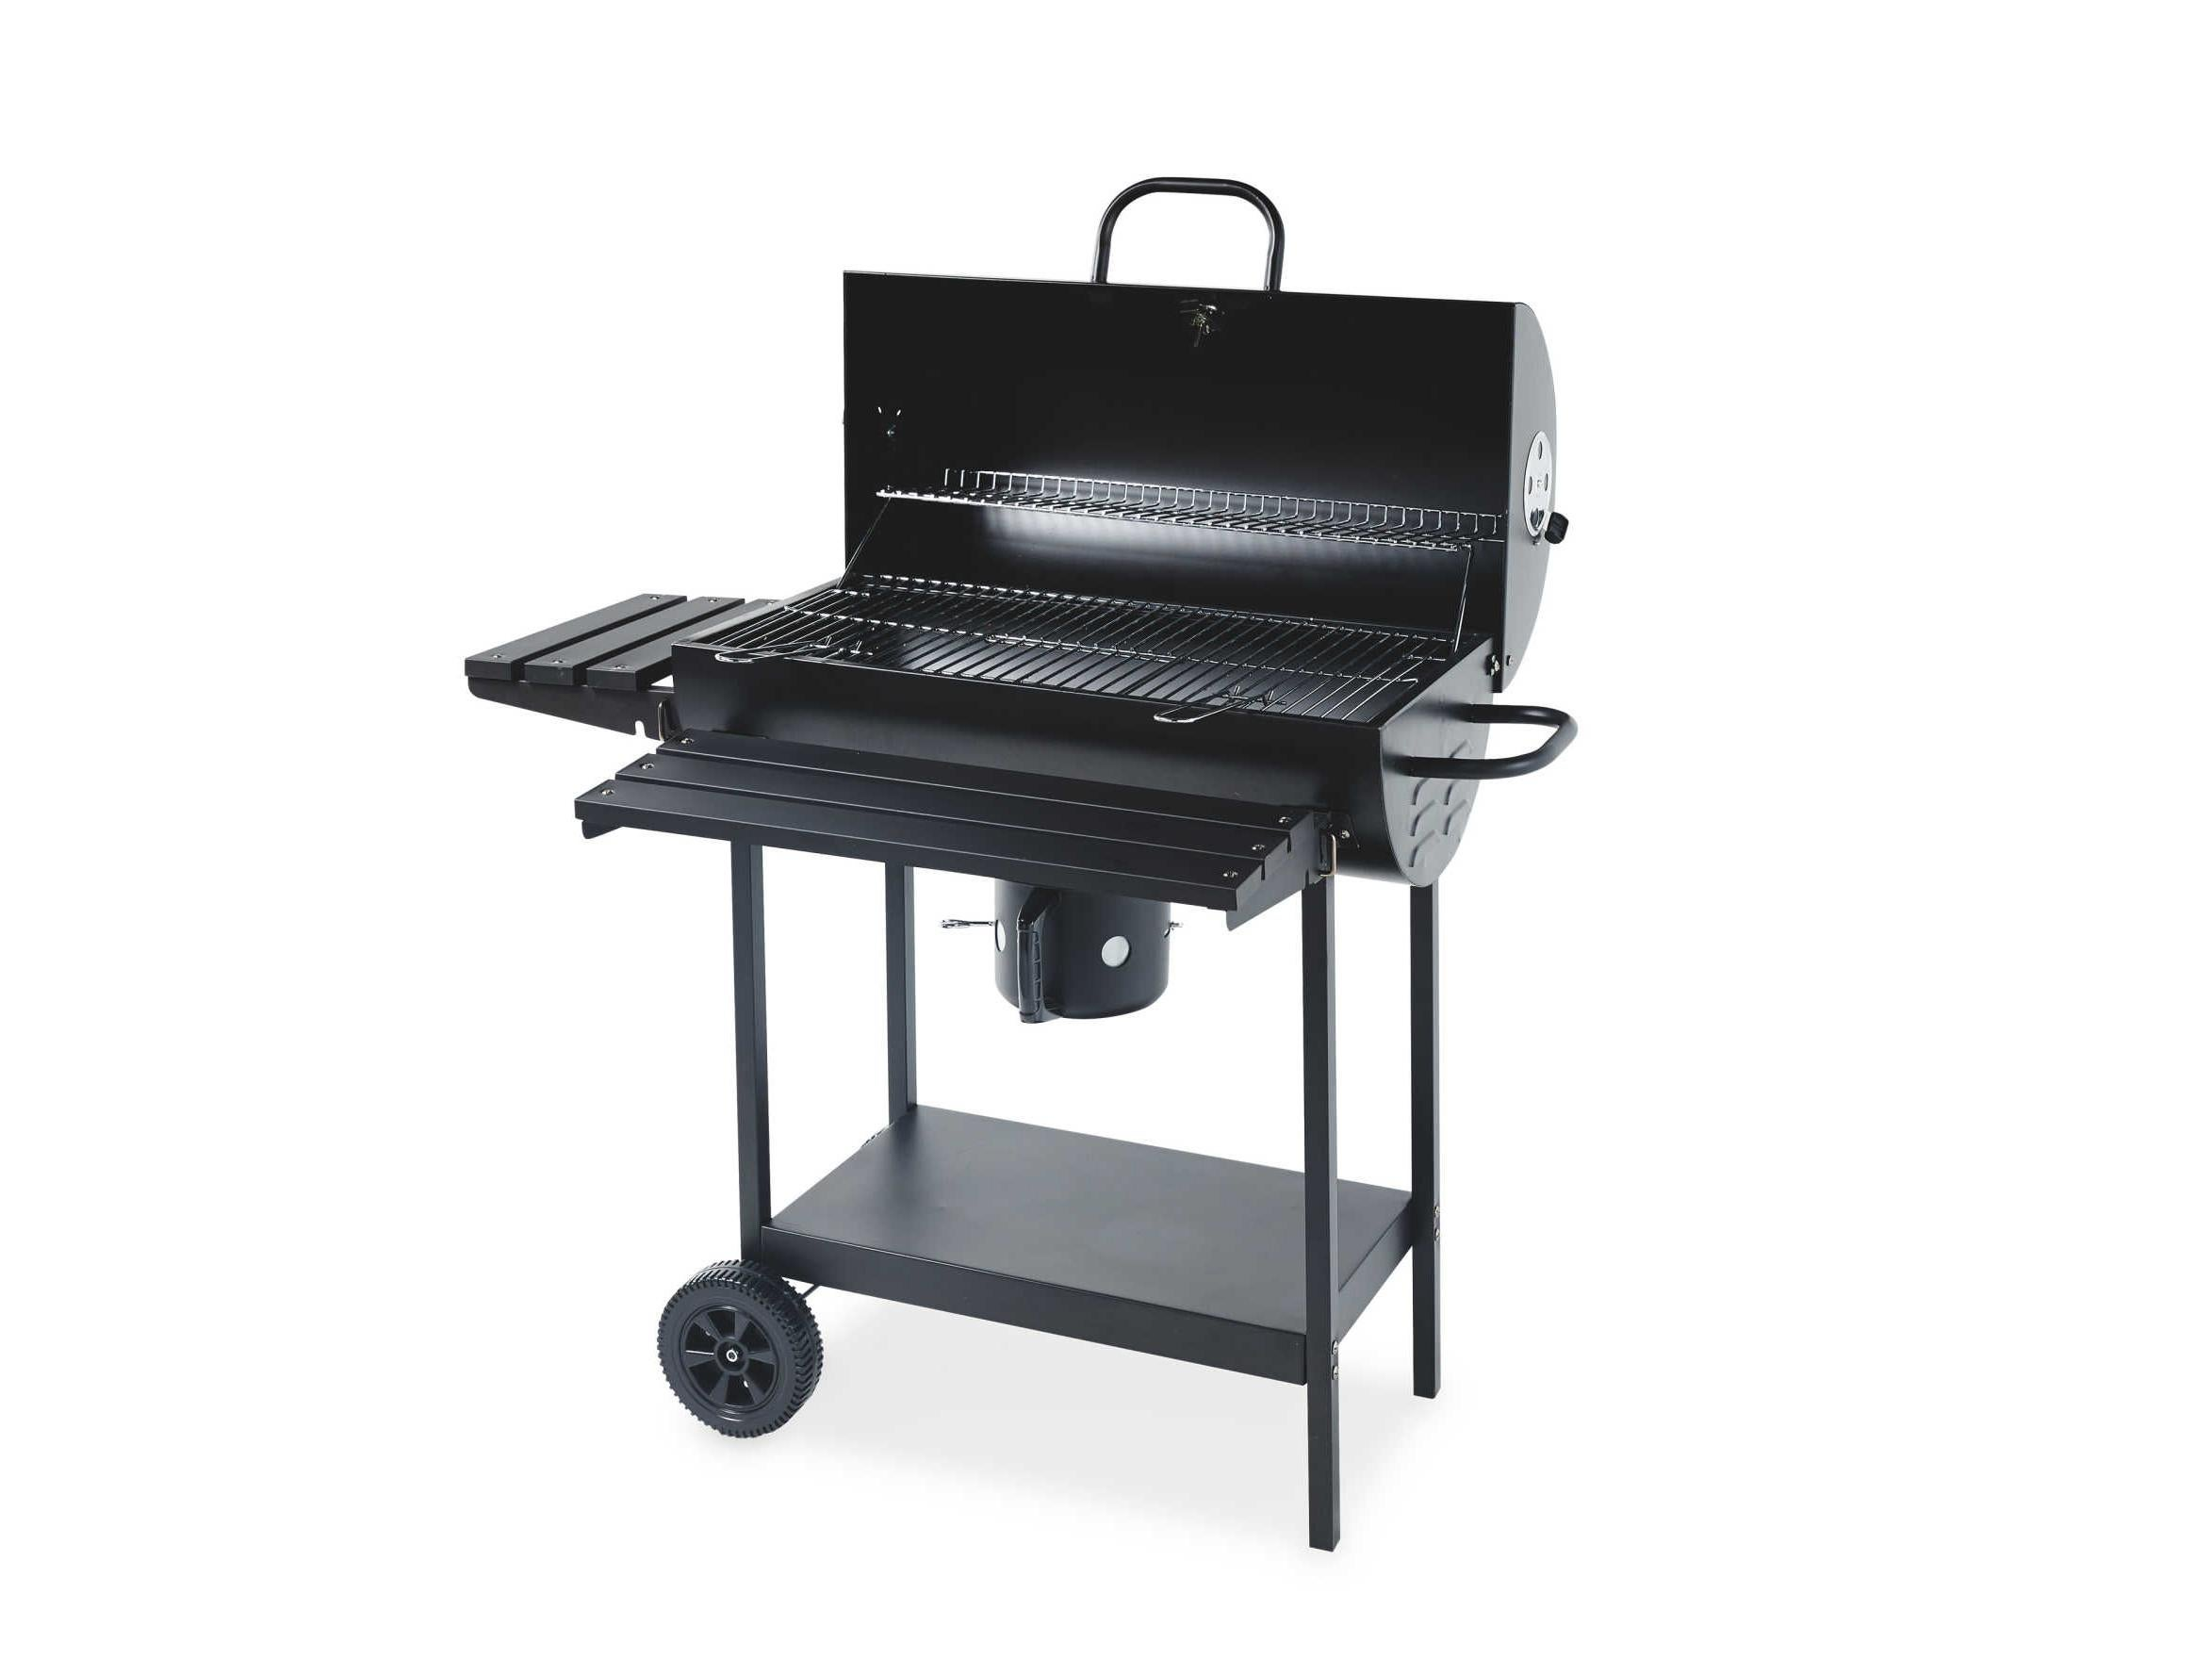 Argos Home American Style Warming Rack Adjustable Charcoal BBQ Steel Black